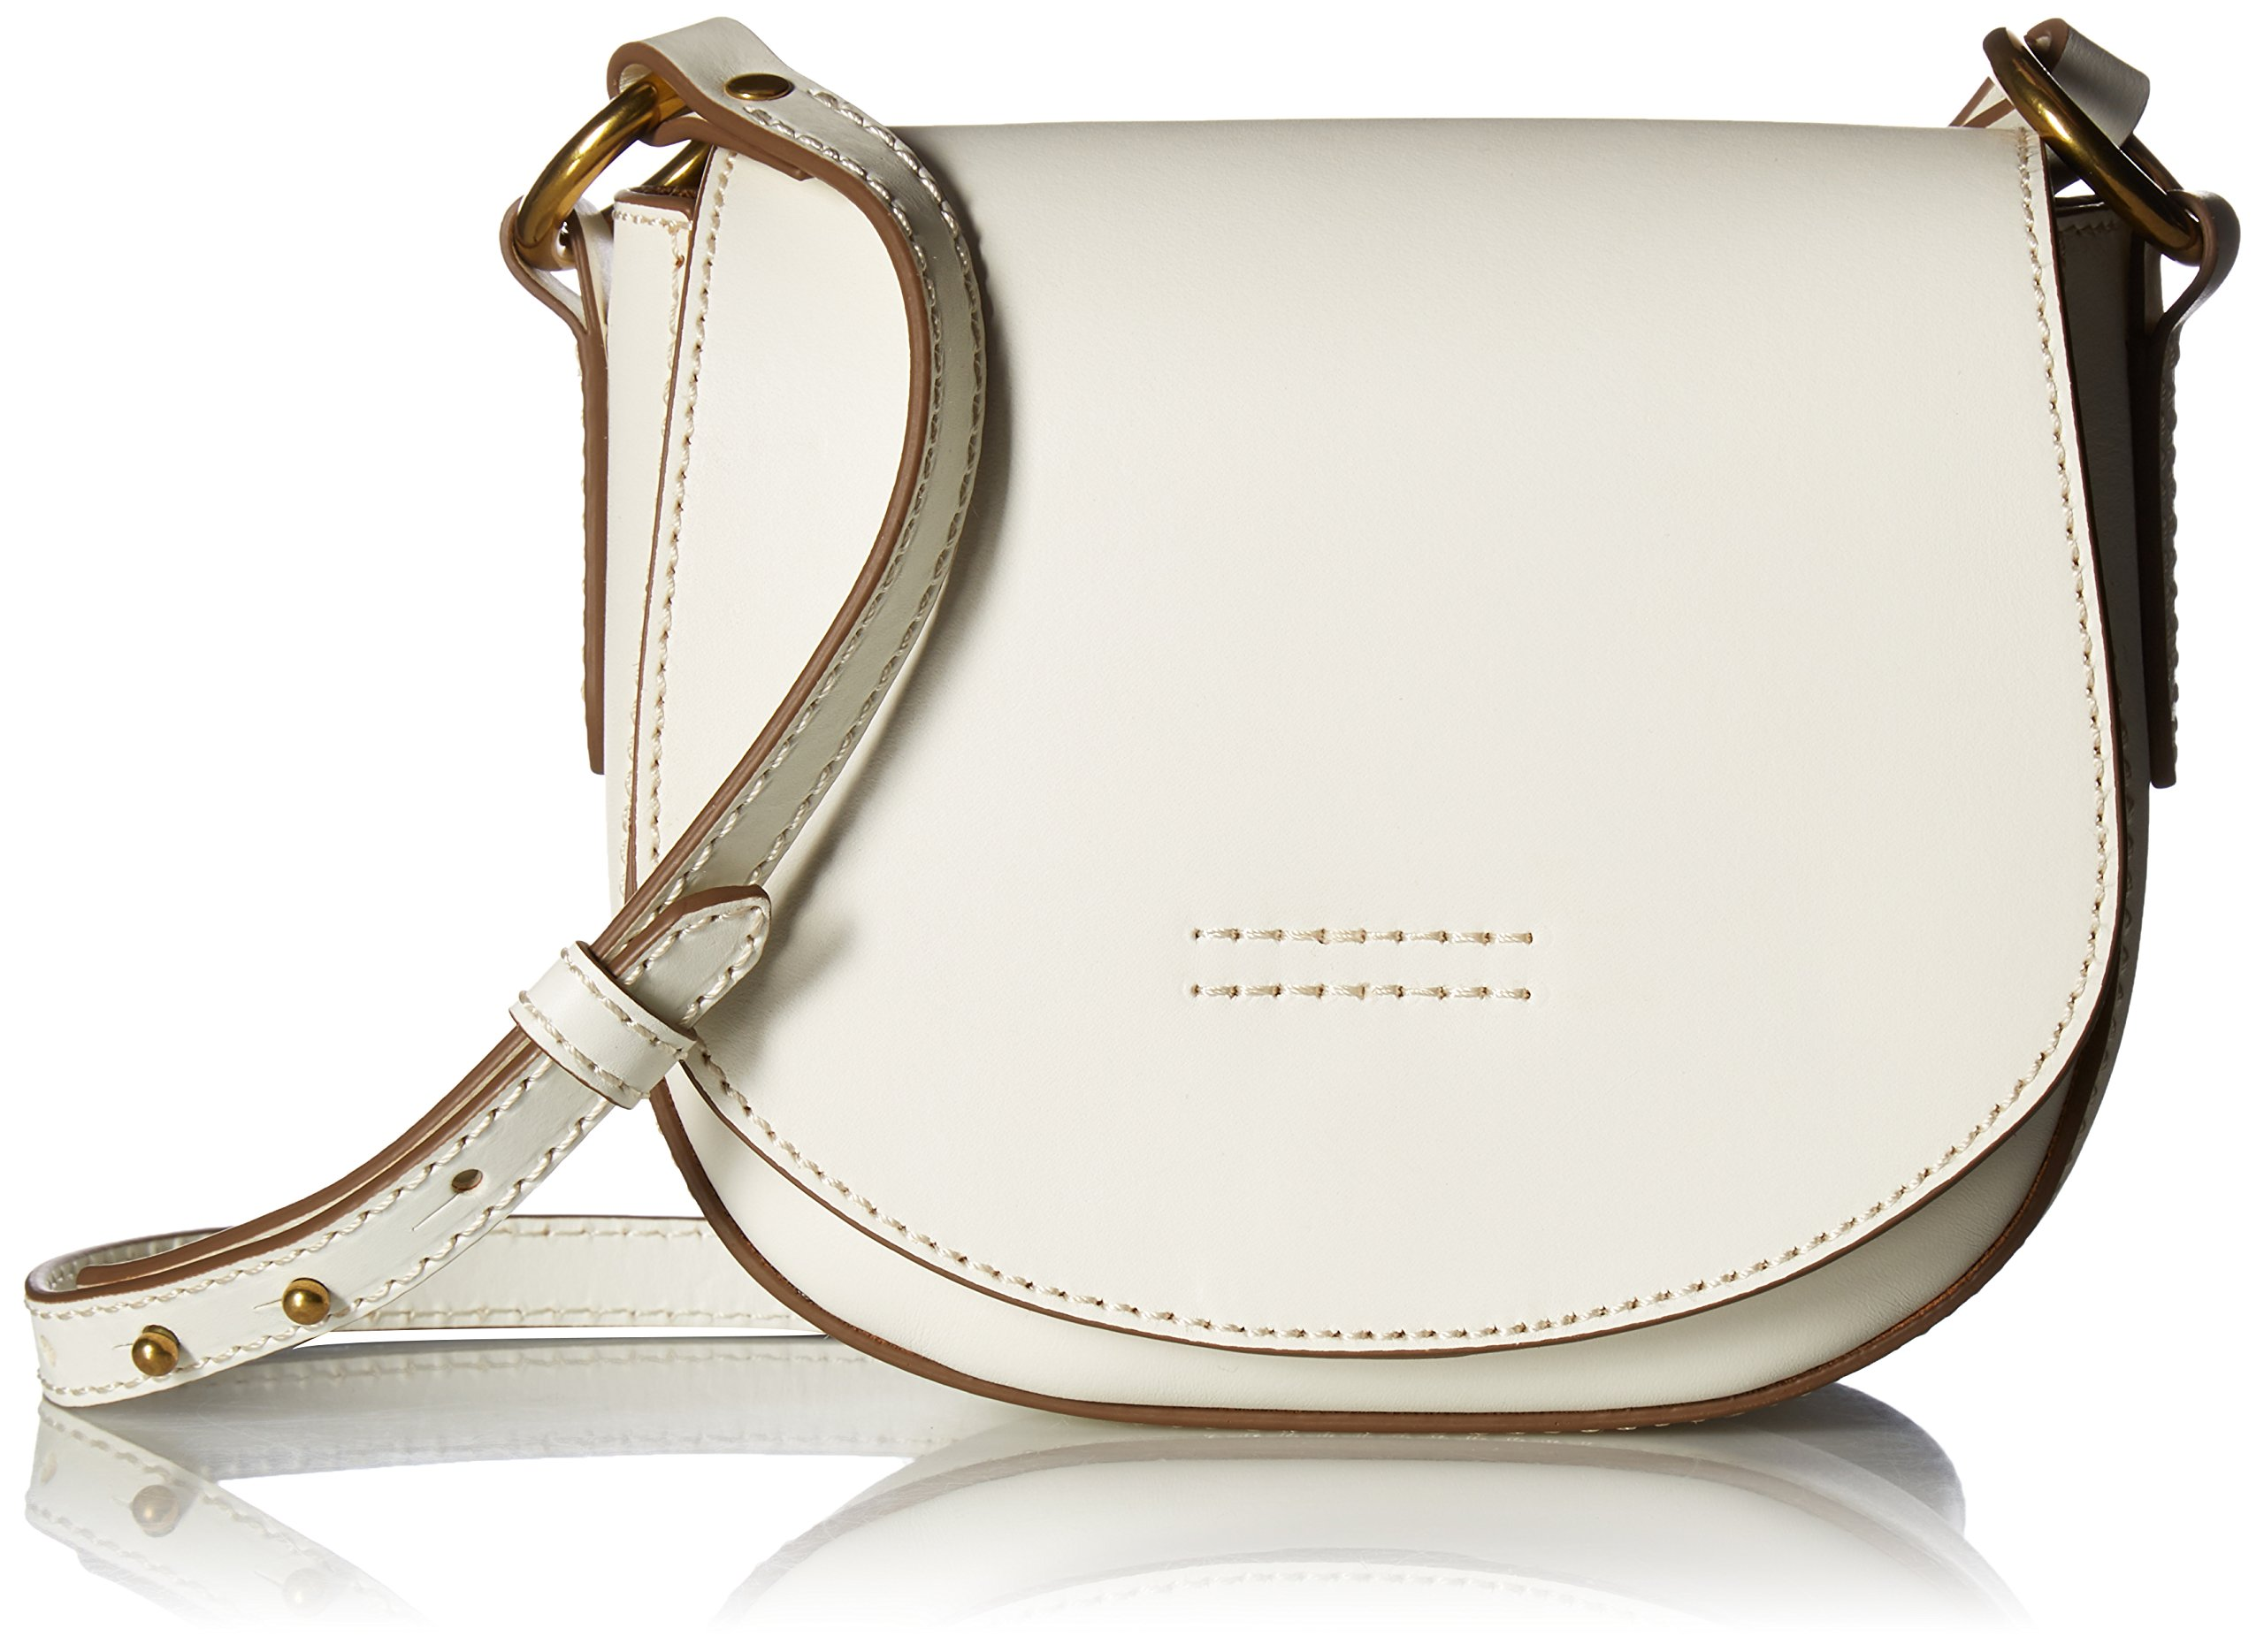 FRYE Harness Small Saddle, Off White by FRYE